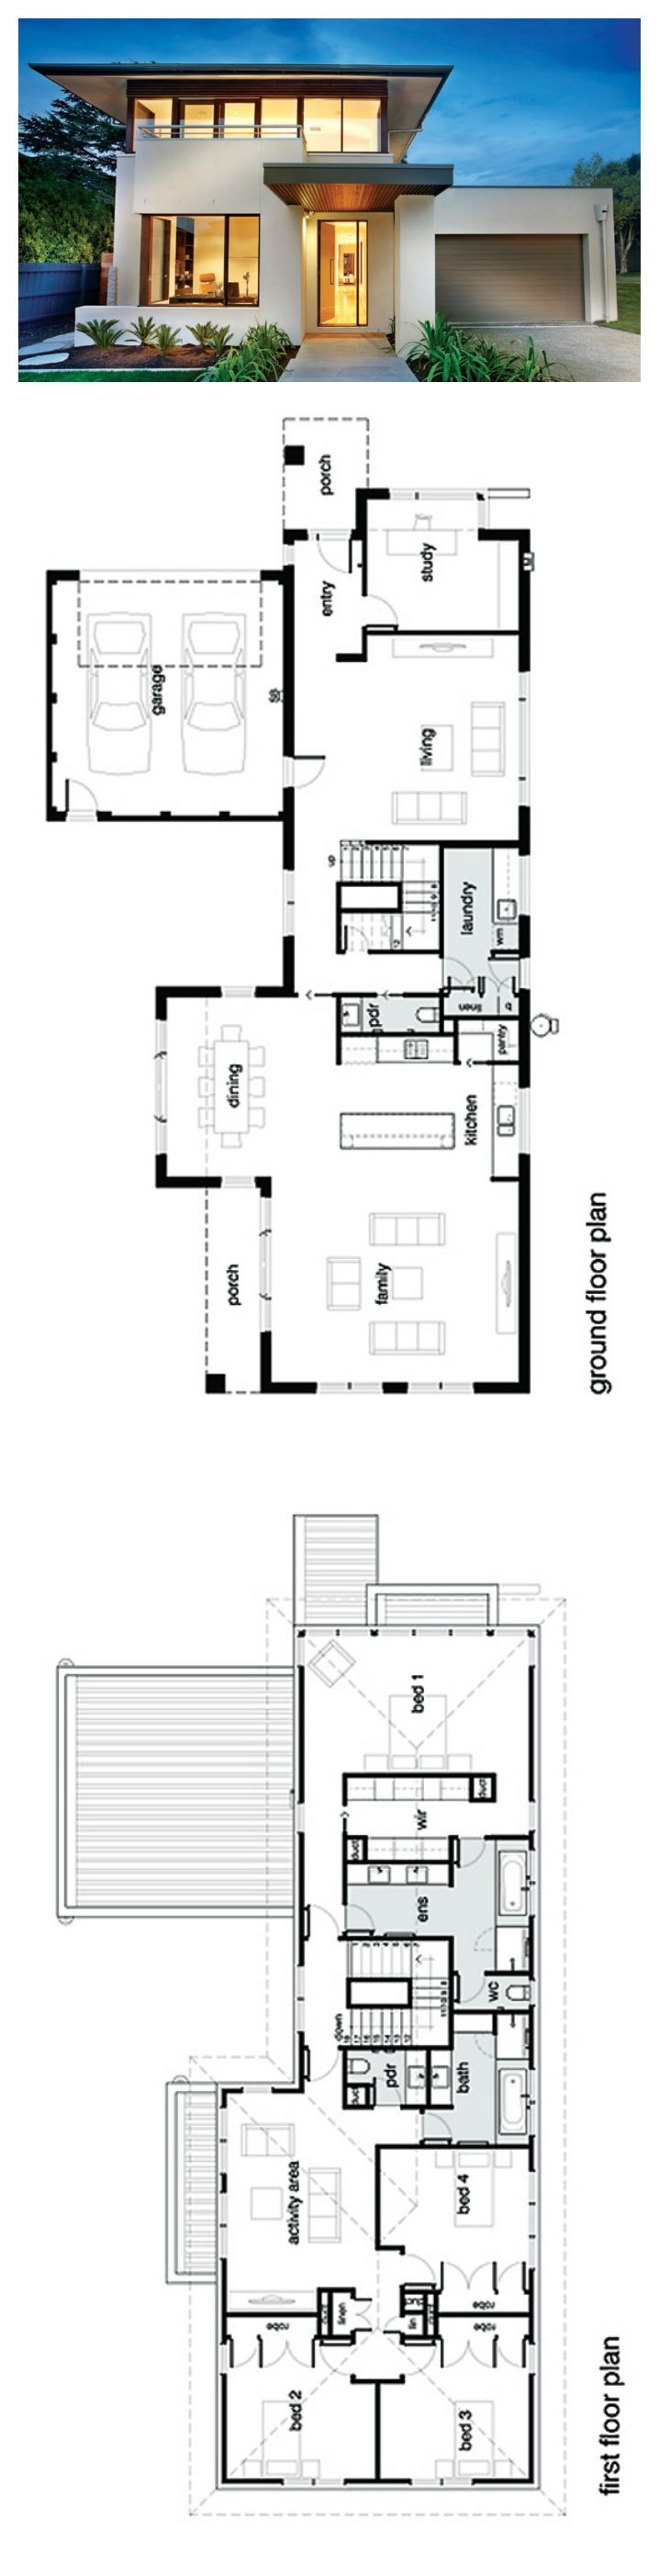 Best 25 modern house plans ideas on pinterest for Modern home blueprints